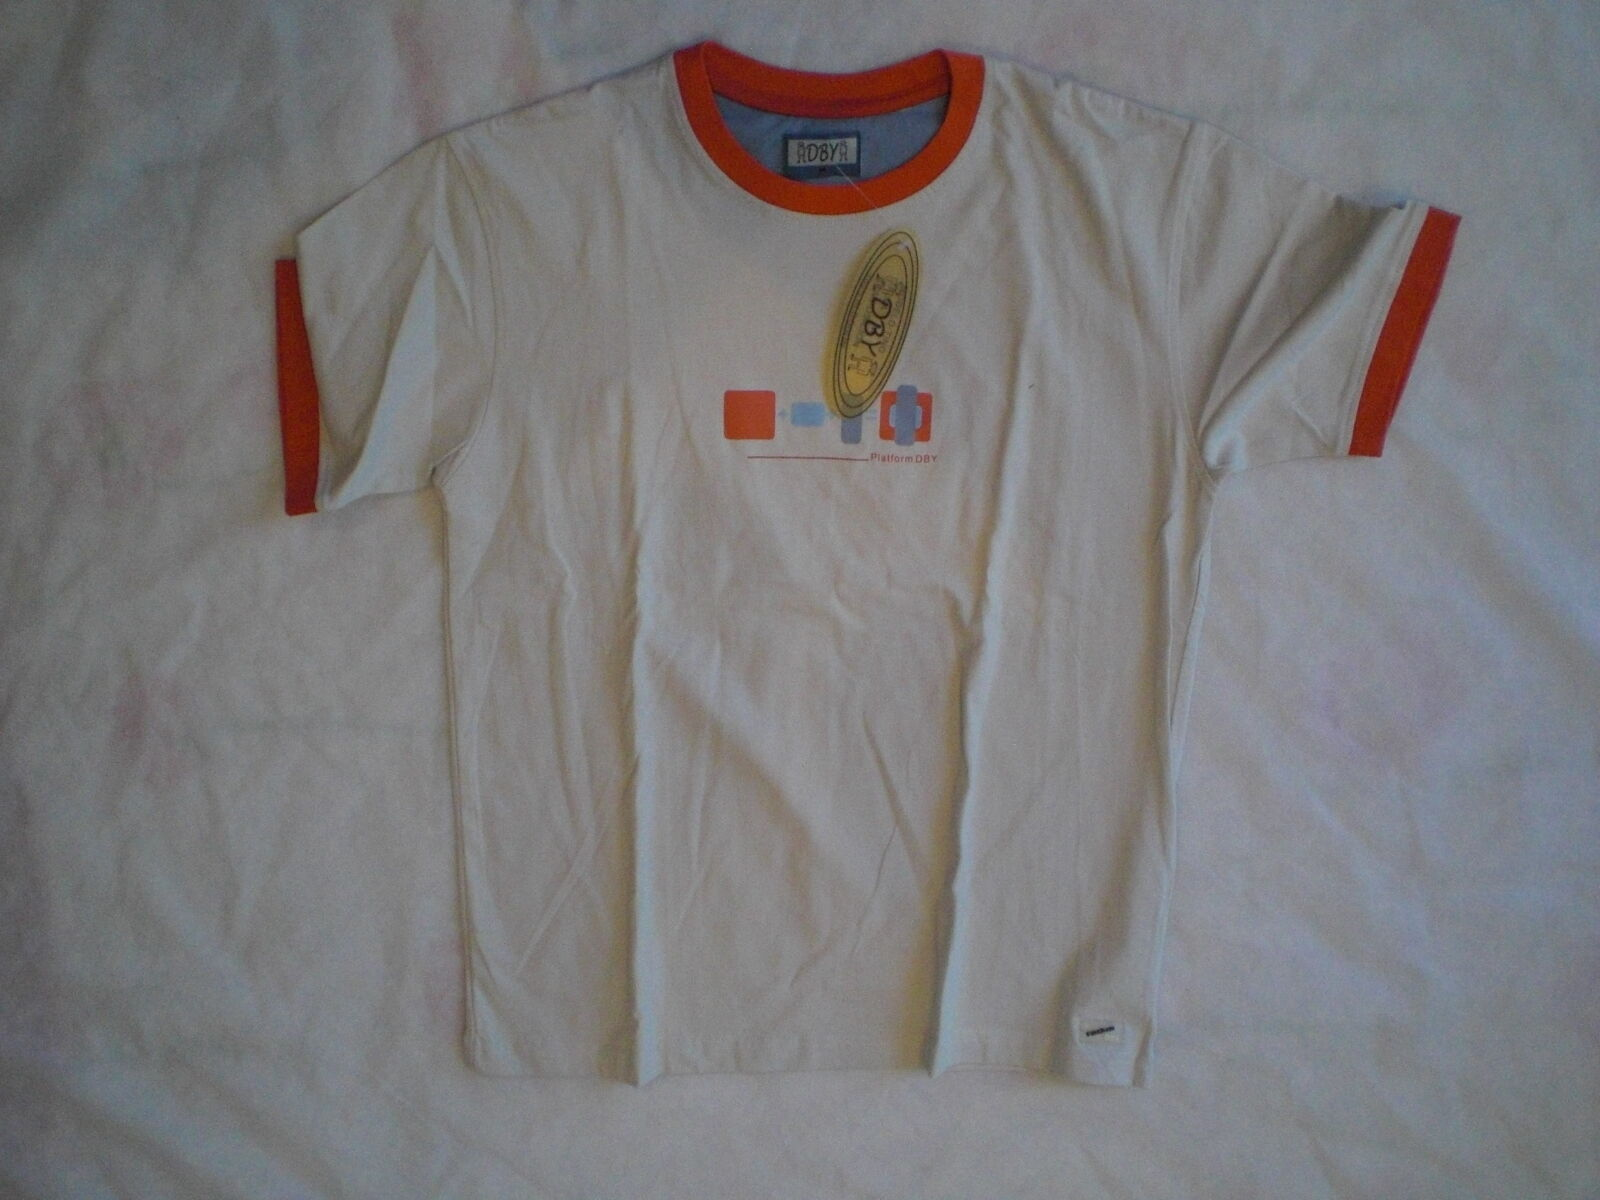 T-shirt man SIZE MEDIUM NEW man t- shirt confecciones caymaris REF. 1-2